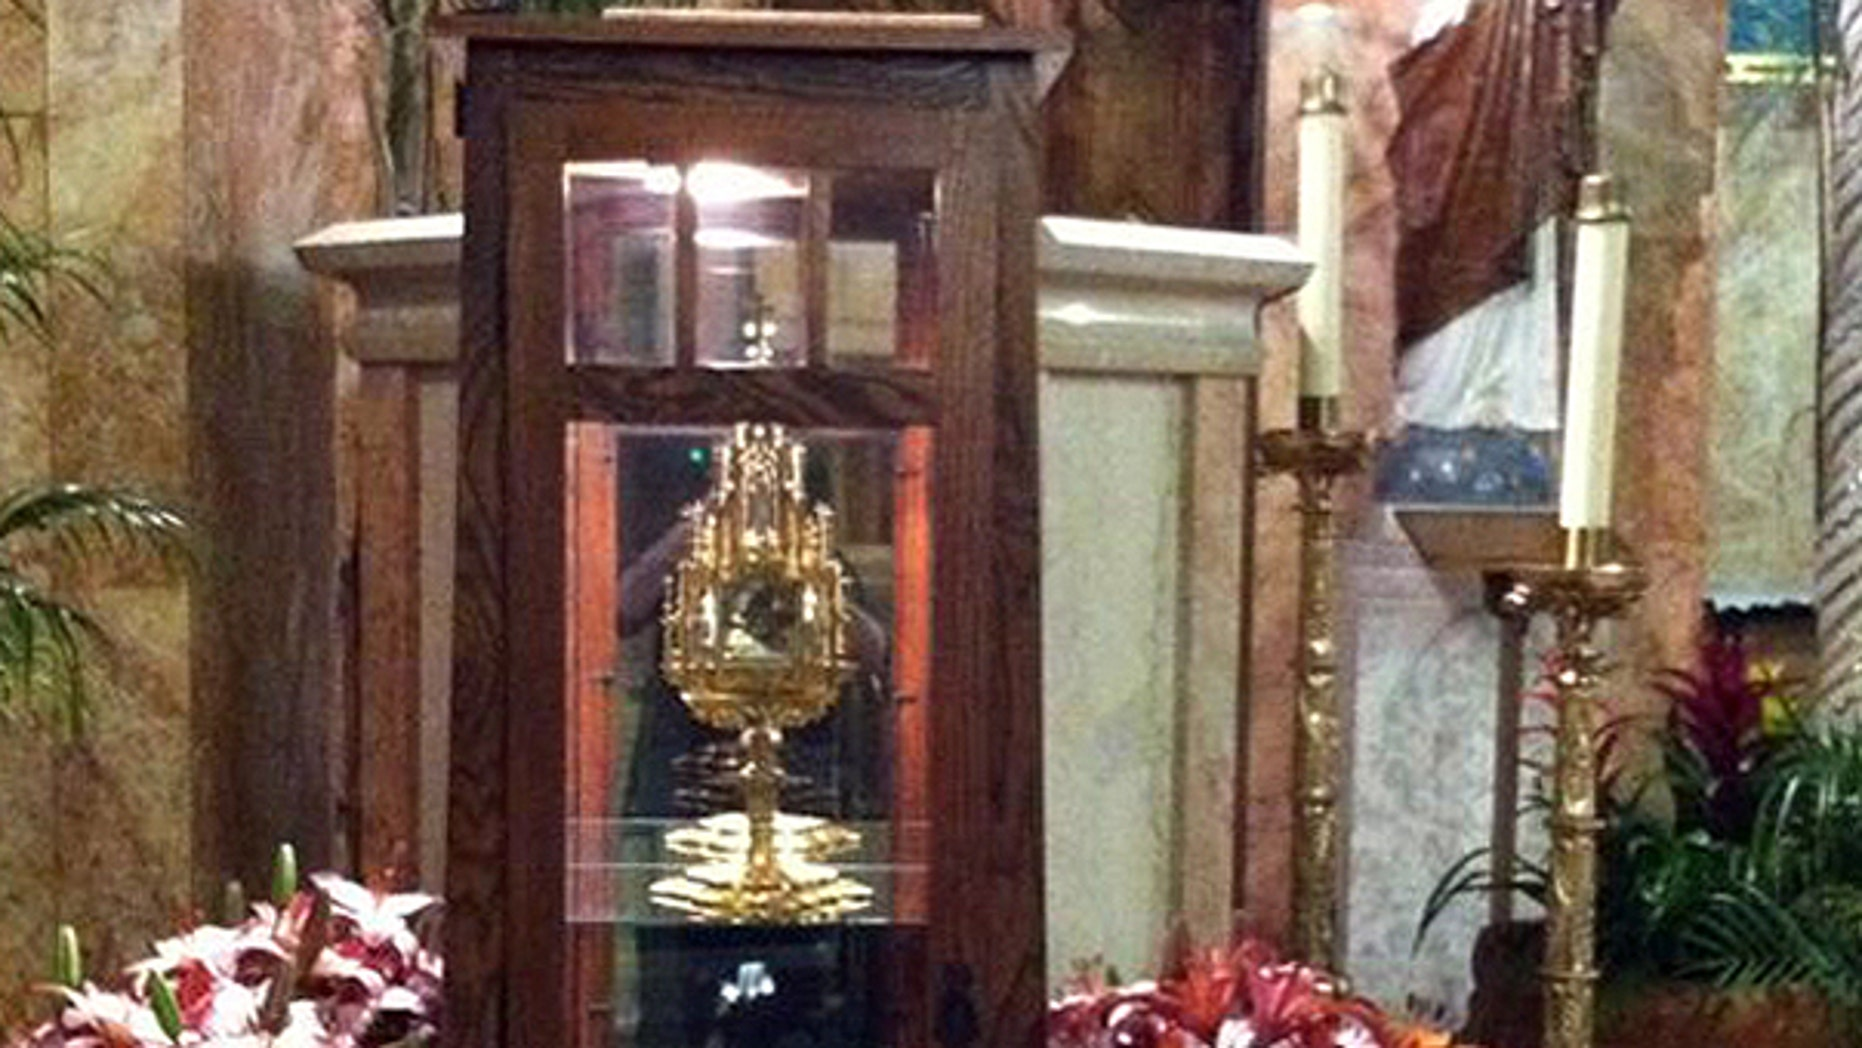 June 13: This undated photo provided by Father Brian Doran of the St. Anthony Catholic Church in Long Beach, Calif. via the Long Beach Police Department shows a 780-year-old religious relic of St. Anthony, the patron saint of lost causes and missing objects, center in cabinet, that was stolen from the church.